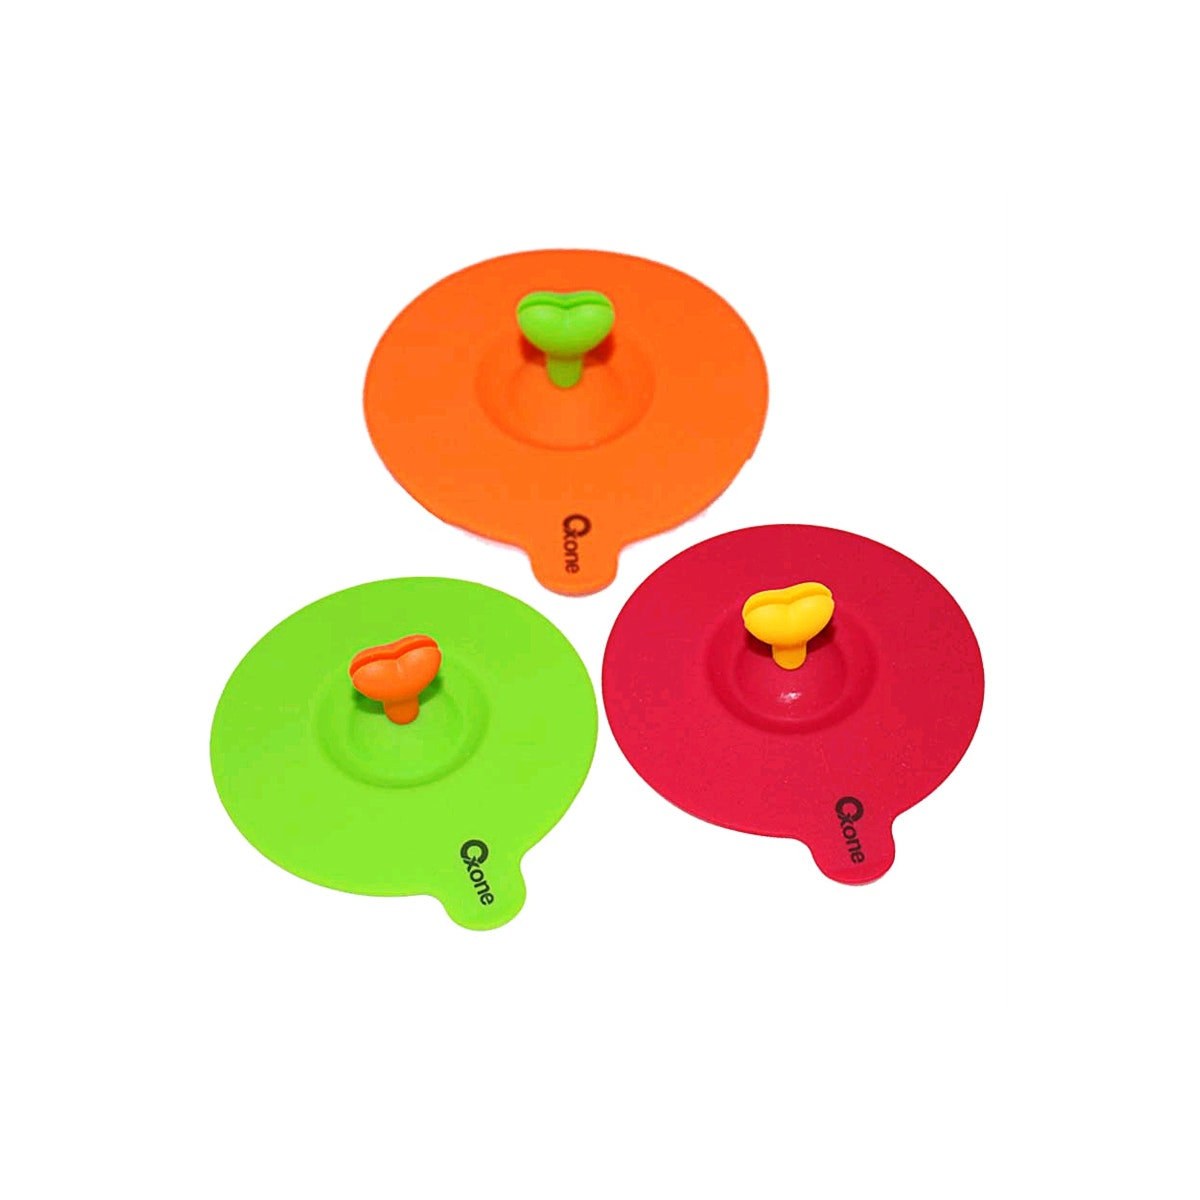 Oxone 3 pcs Silicone Cup Cover OX 913